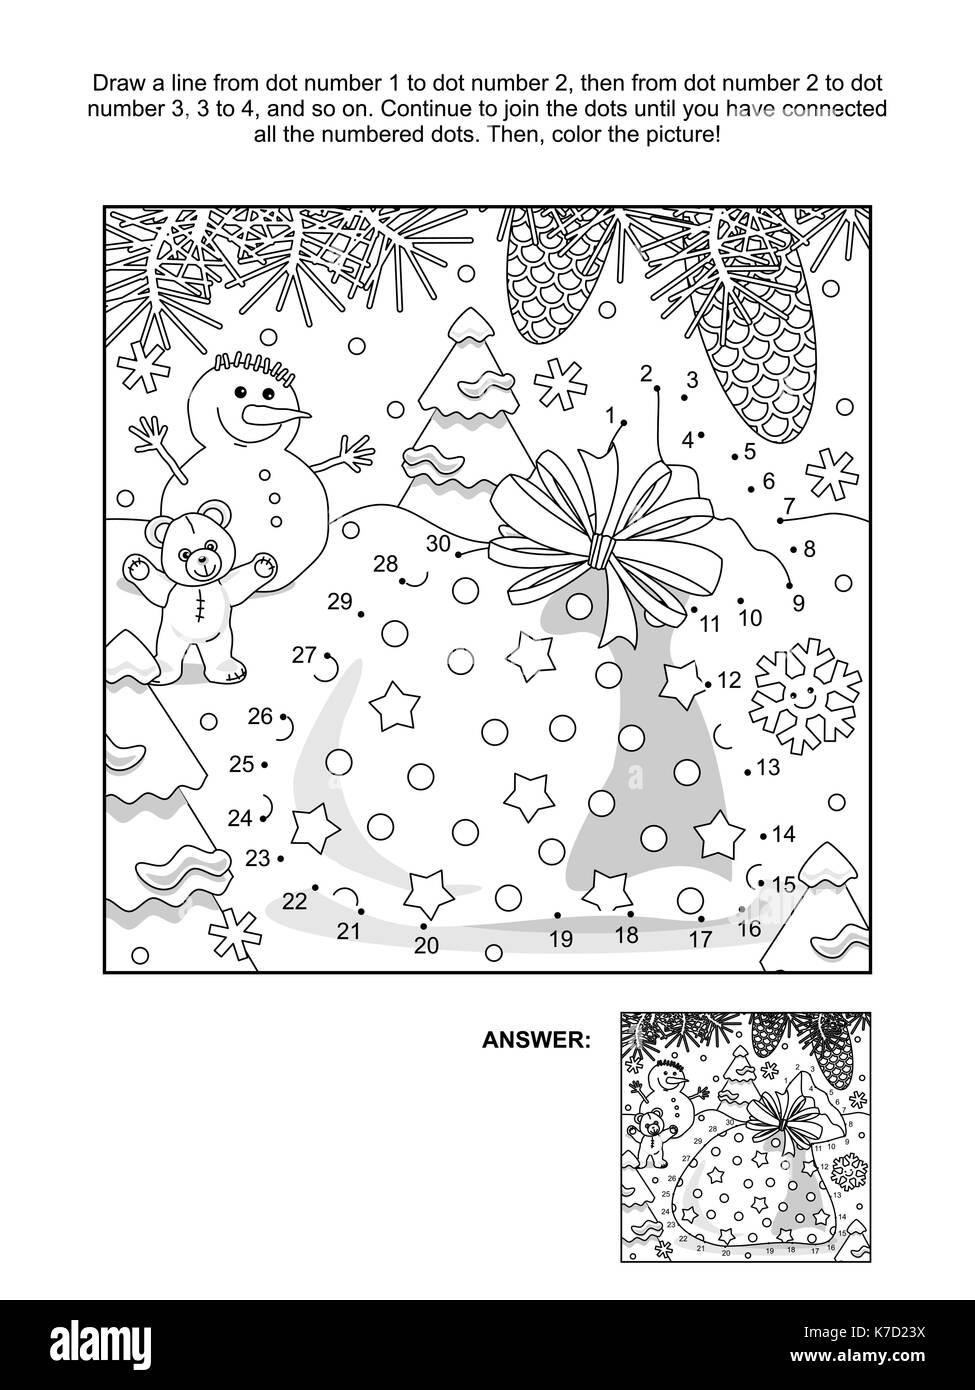 Connect Dots Coloring Page Teddy Stockfotos & Connect Dots Coloring ...